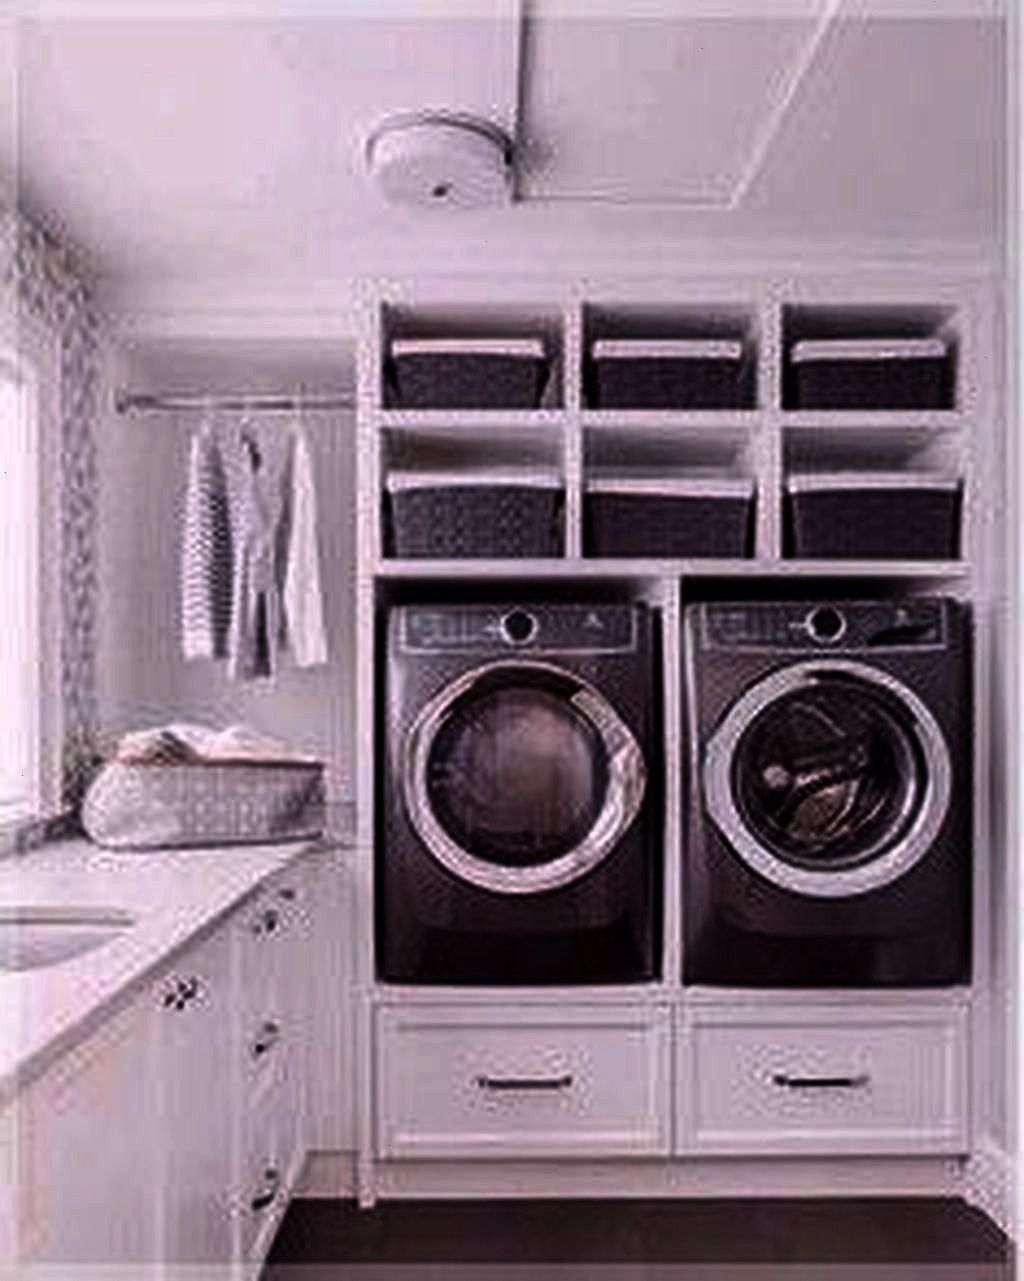 Room Layout Ideas  30 Relaxing Laundry Room Layout Ideas 30 Relaxing Laundry Room Layout Ideas Spacesaving ceilingmounted clothes drying rack with remote control 10 Small...